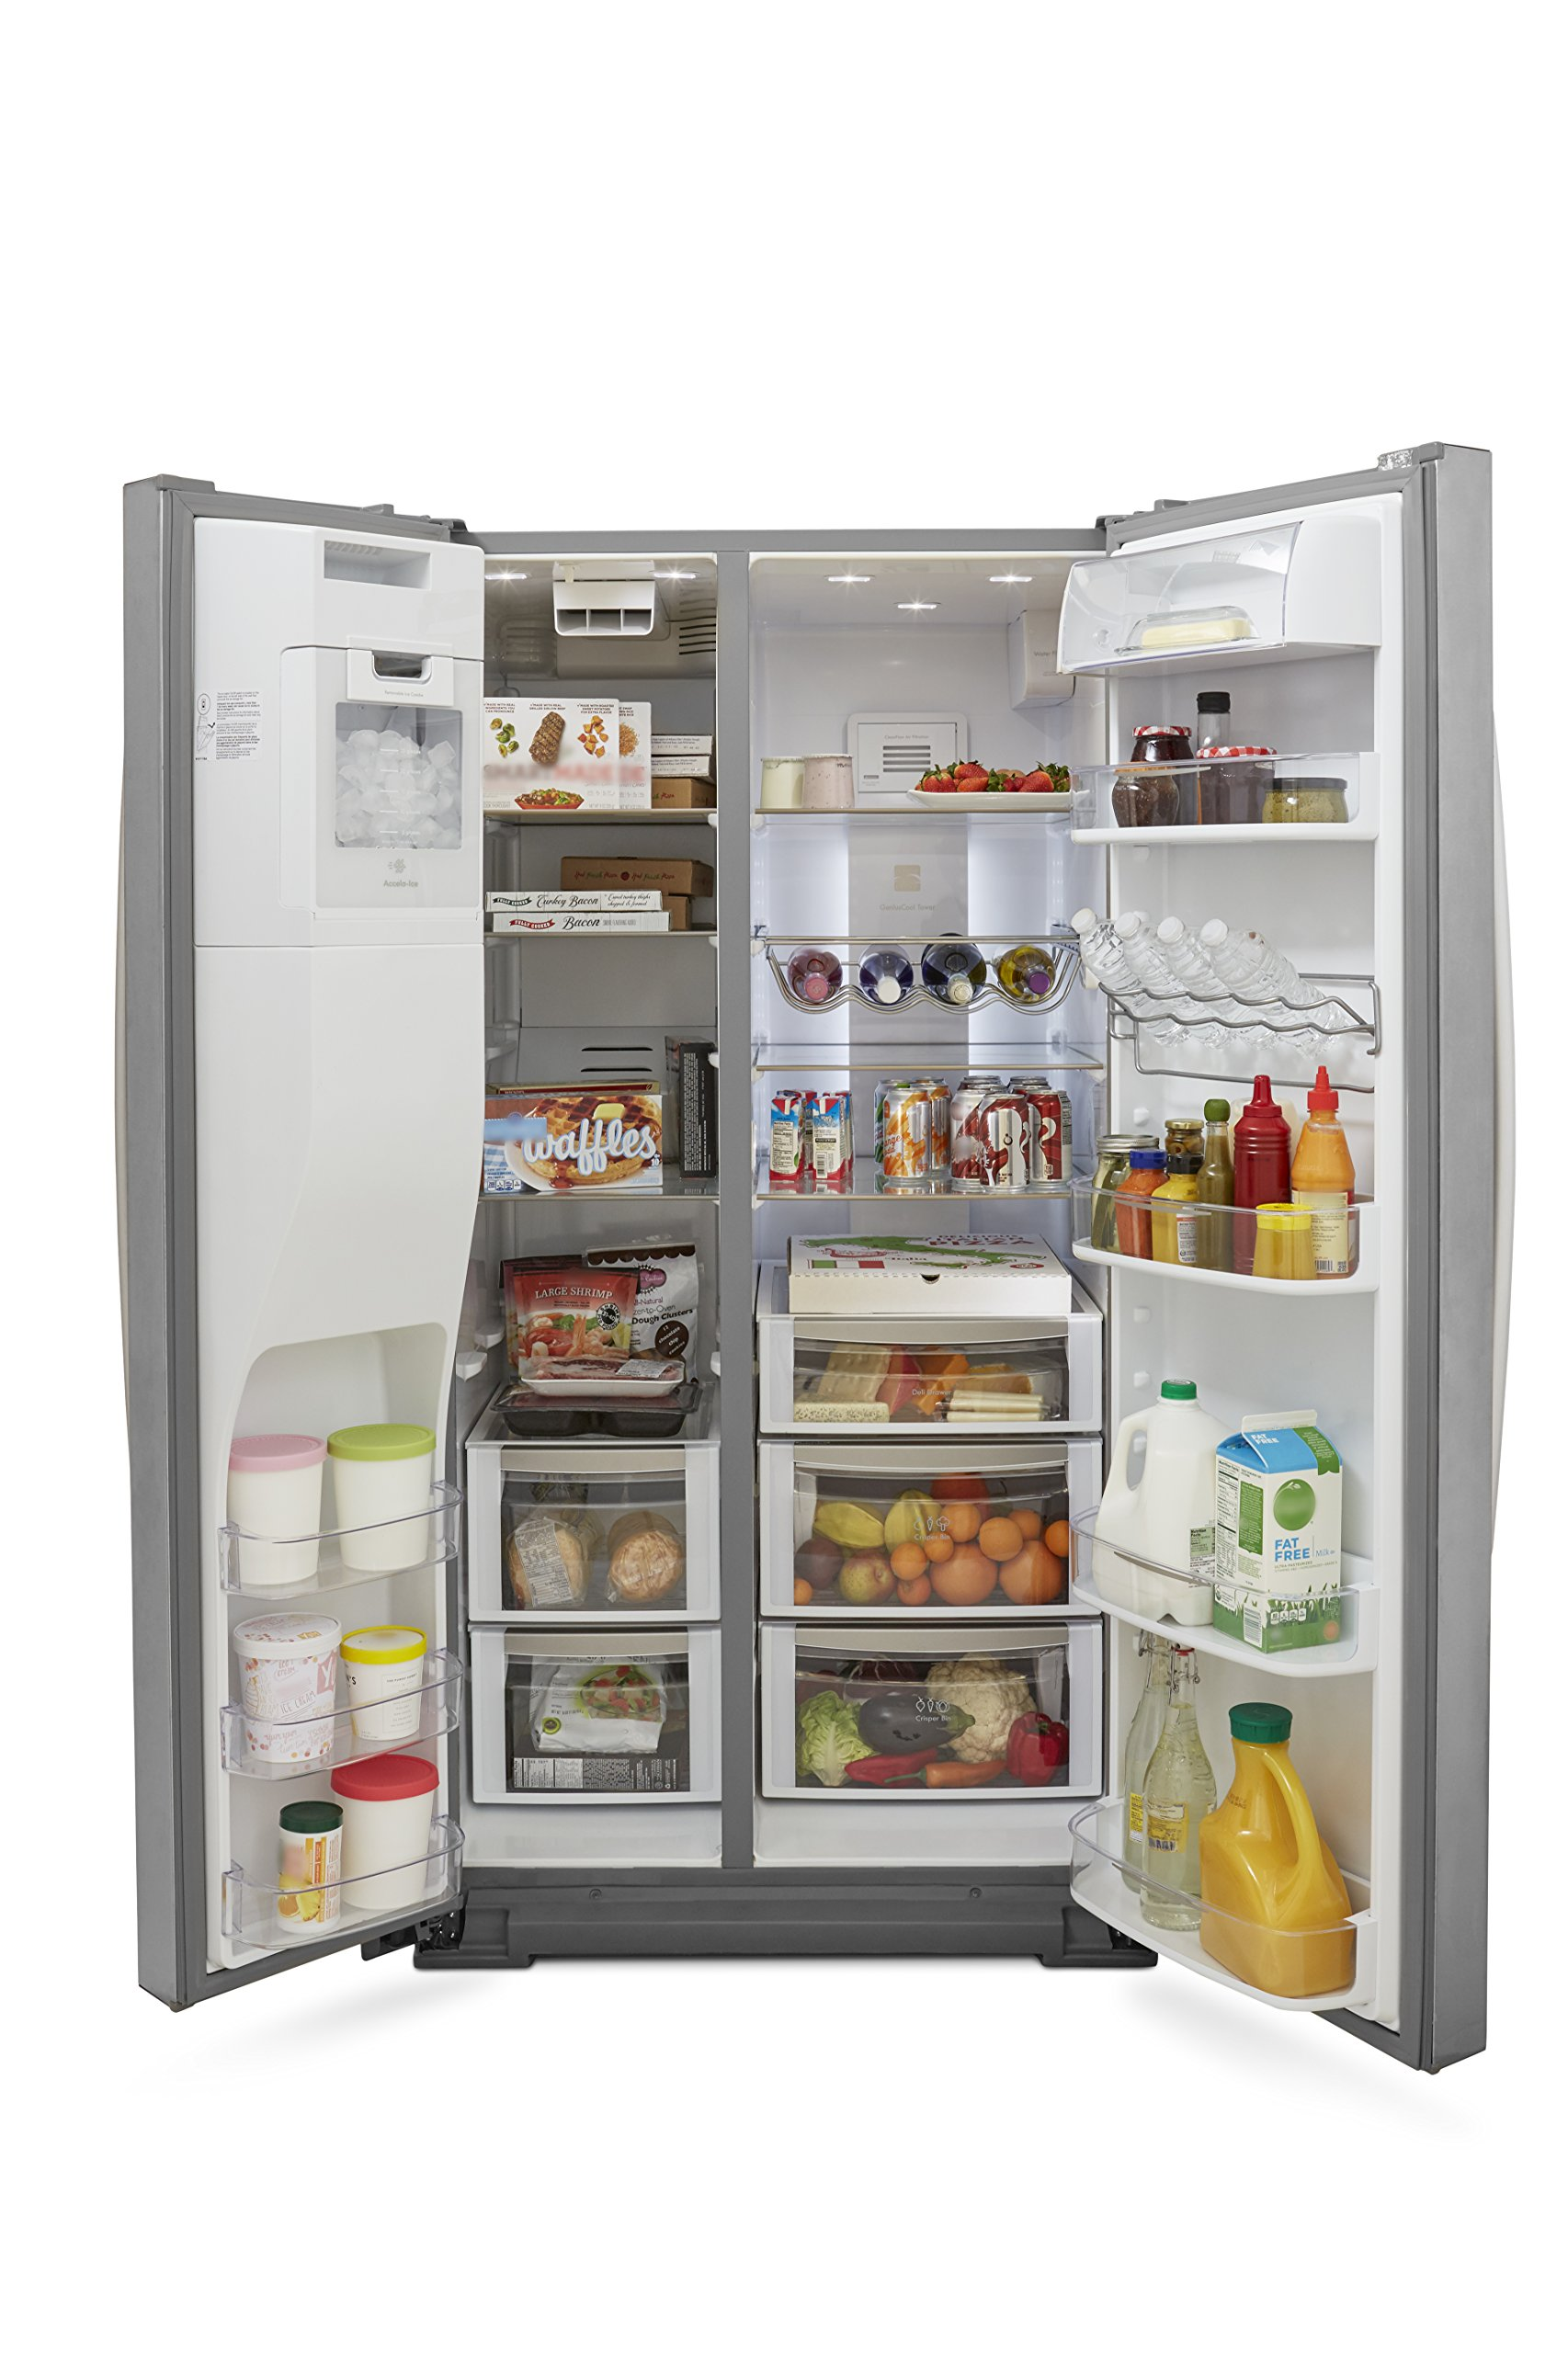 Kenmore Elite 51773 28 cu. ft. Side-by-Side Refrigerator with Accela Ice Technology in Stainless Steel, includes delivery and hookup (Available in select cities only) by Kenmore (Image #7)